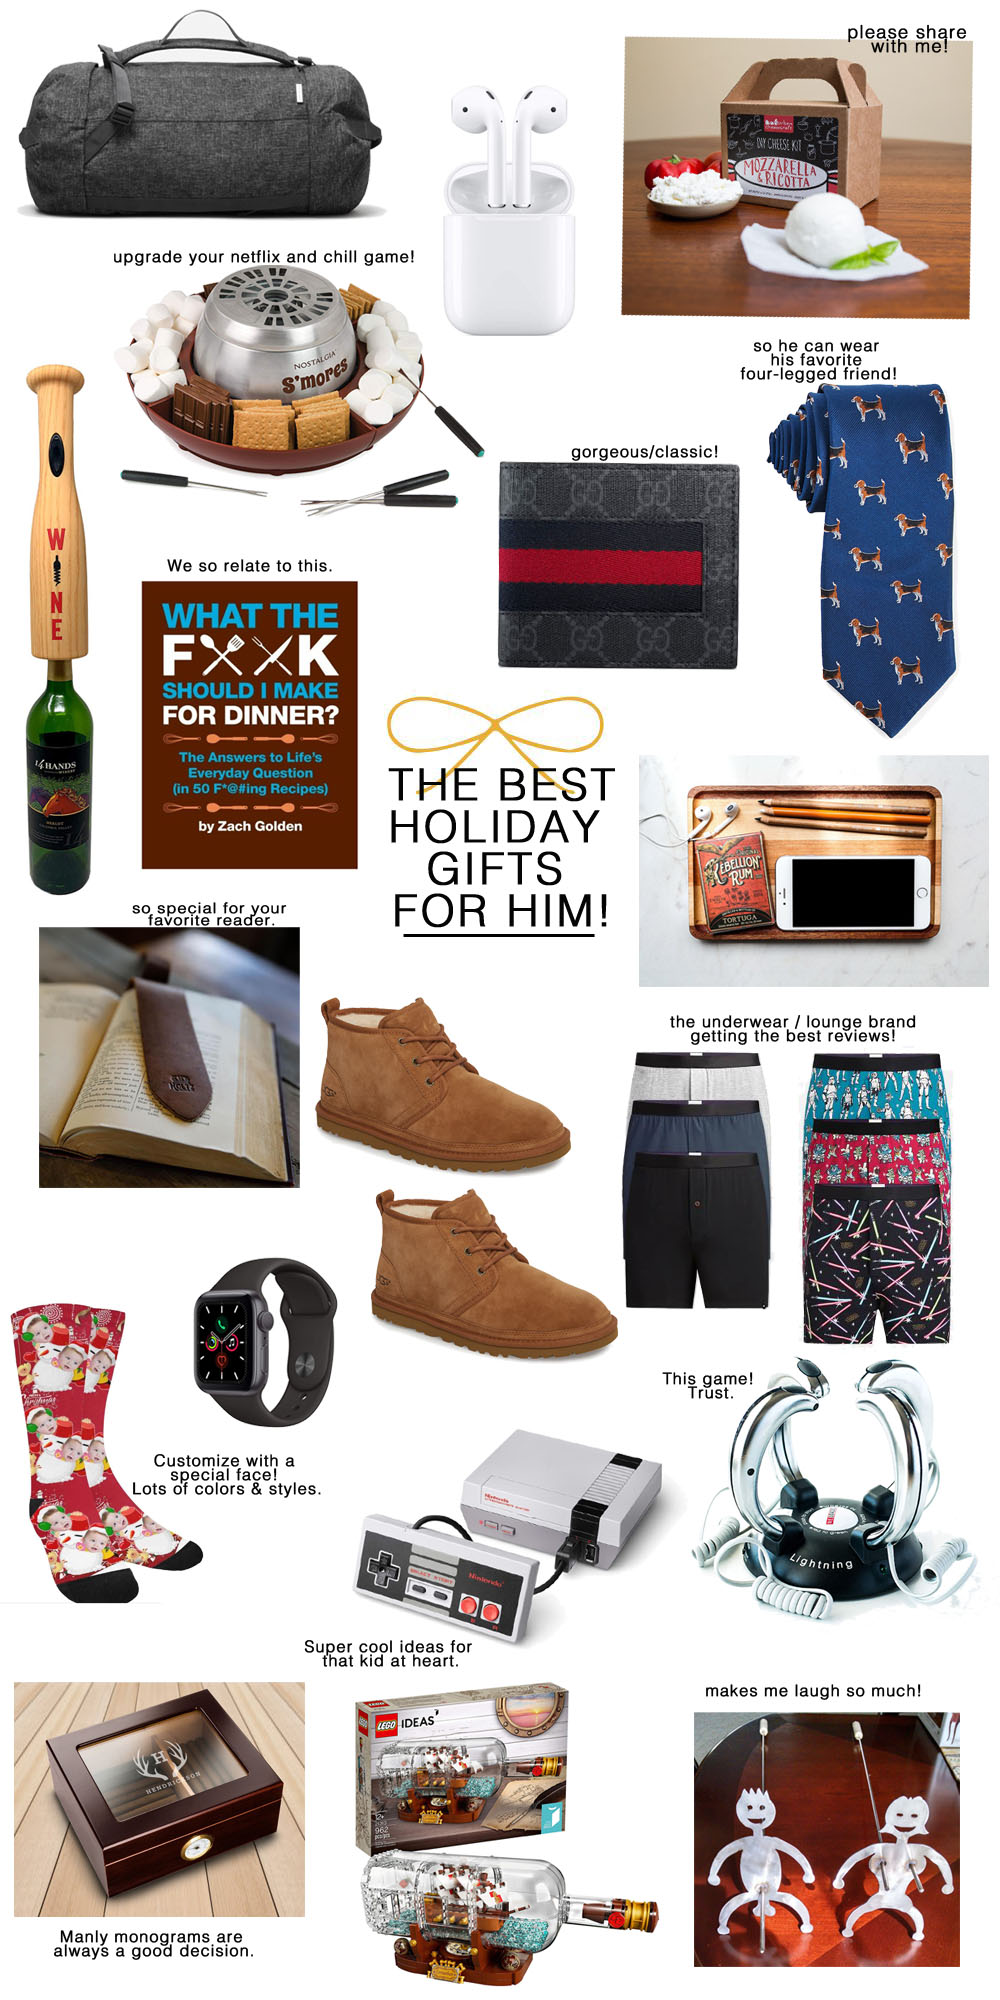 20+ Creative, Fun & Classic Gifts for Him by popular Florida life and style blog, The Modern Savvy: collage image of Everlane travel bag, baseball bat wine opener, Gucci wallet, cookbook, dog tie, monogrammed leather bookmark, ugg chukka boots, wooden catchall, custom photo socks, apple watch, classic nintendo, lightning reaction reload, engraved humidor, Lego ship in a bottle building set, and adult BBQ/S'mores skewers.